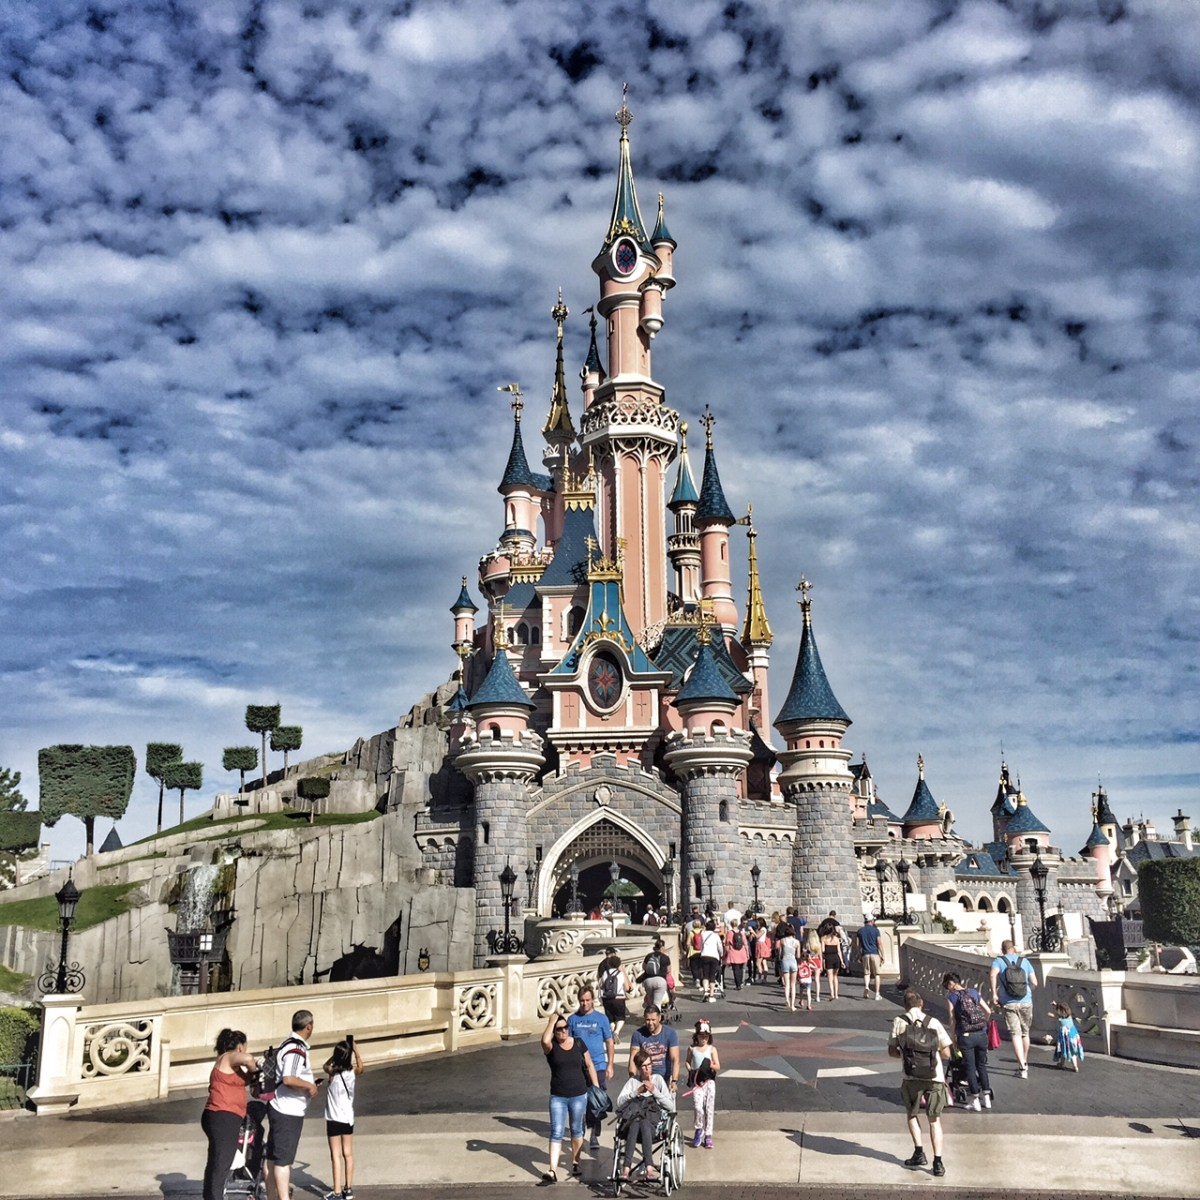 50 photos from our magical trip to Disneyland Paris